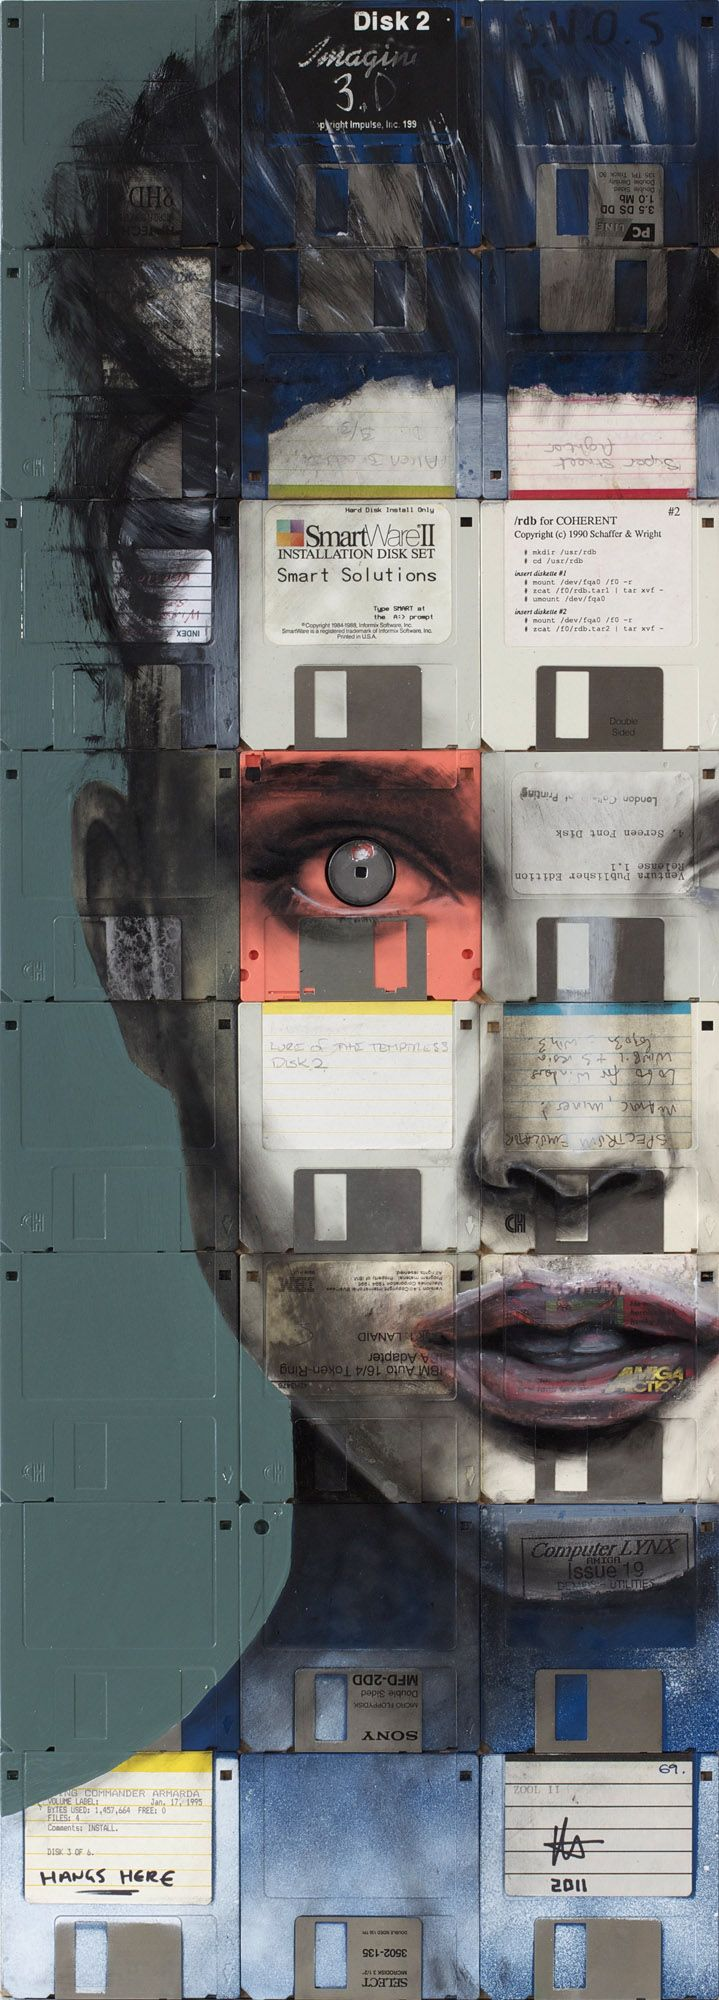 Artist: Nick Gentry // I really love the idea of recycling floppy disks as a canvas of sorts. Pretty sure I've still got hundreds of them what with being a massive hoarder, might just have to experiment sometime.